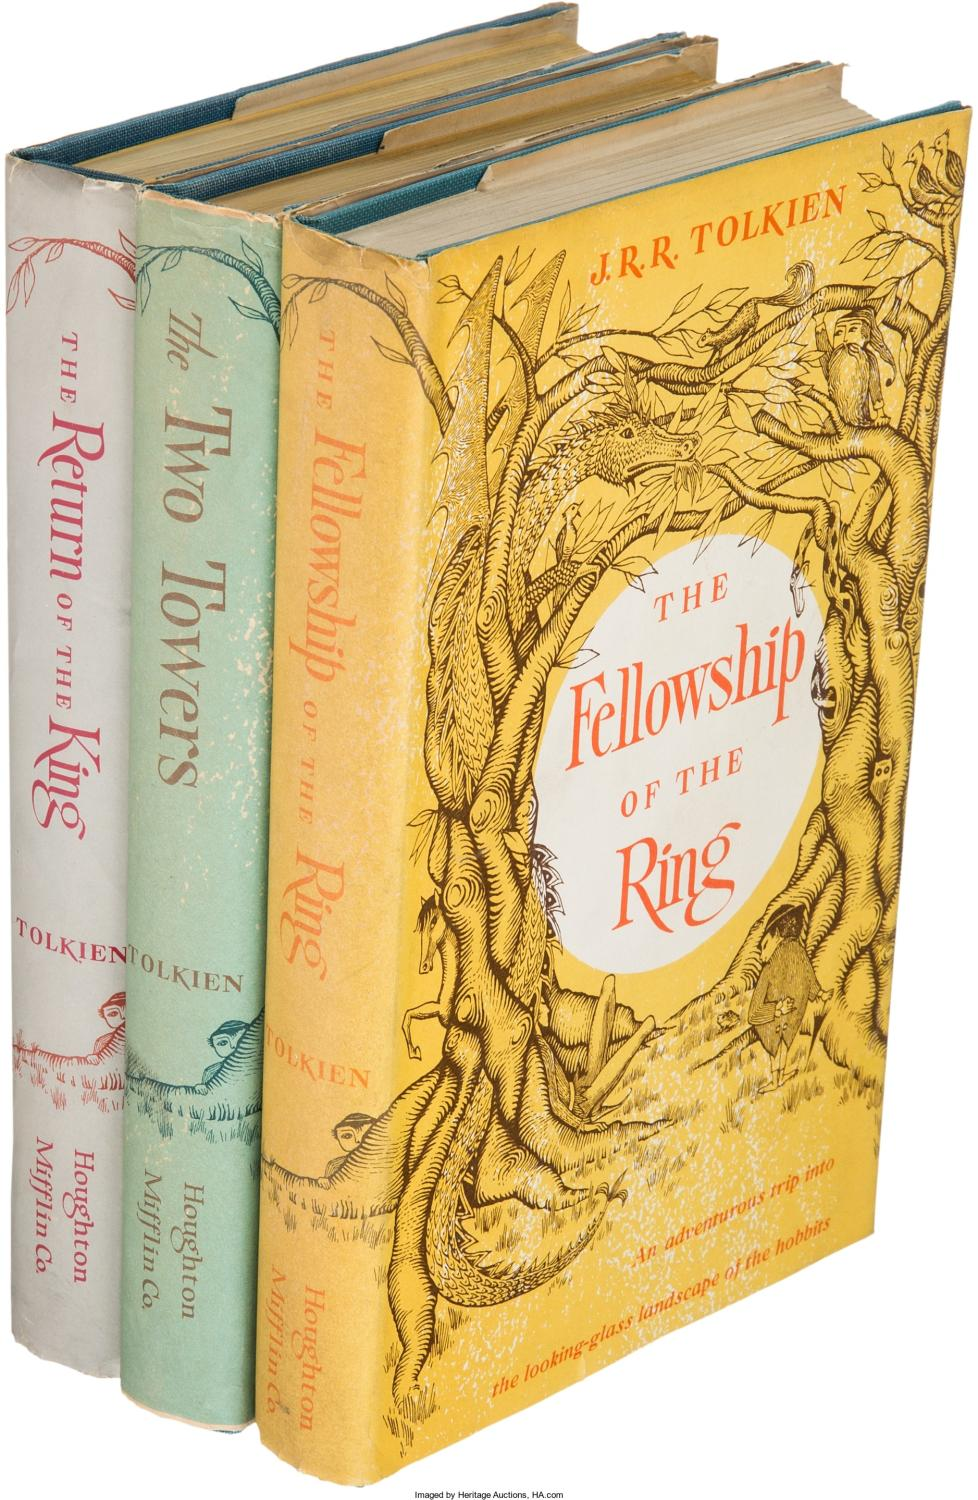 The Lord of the Rings: First American Edition Set by J.R.R